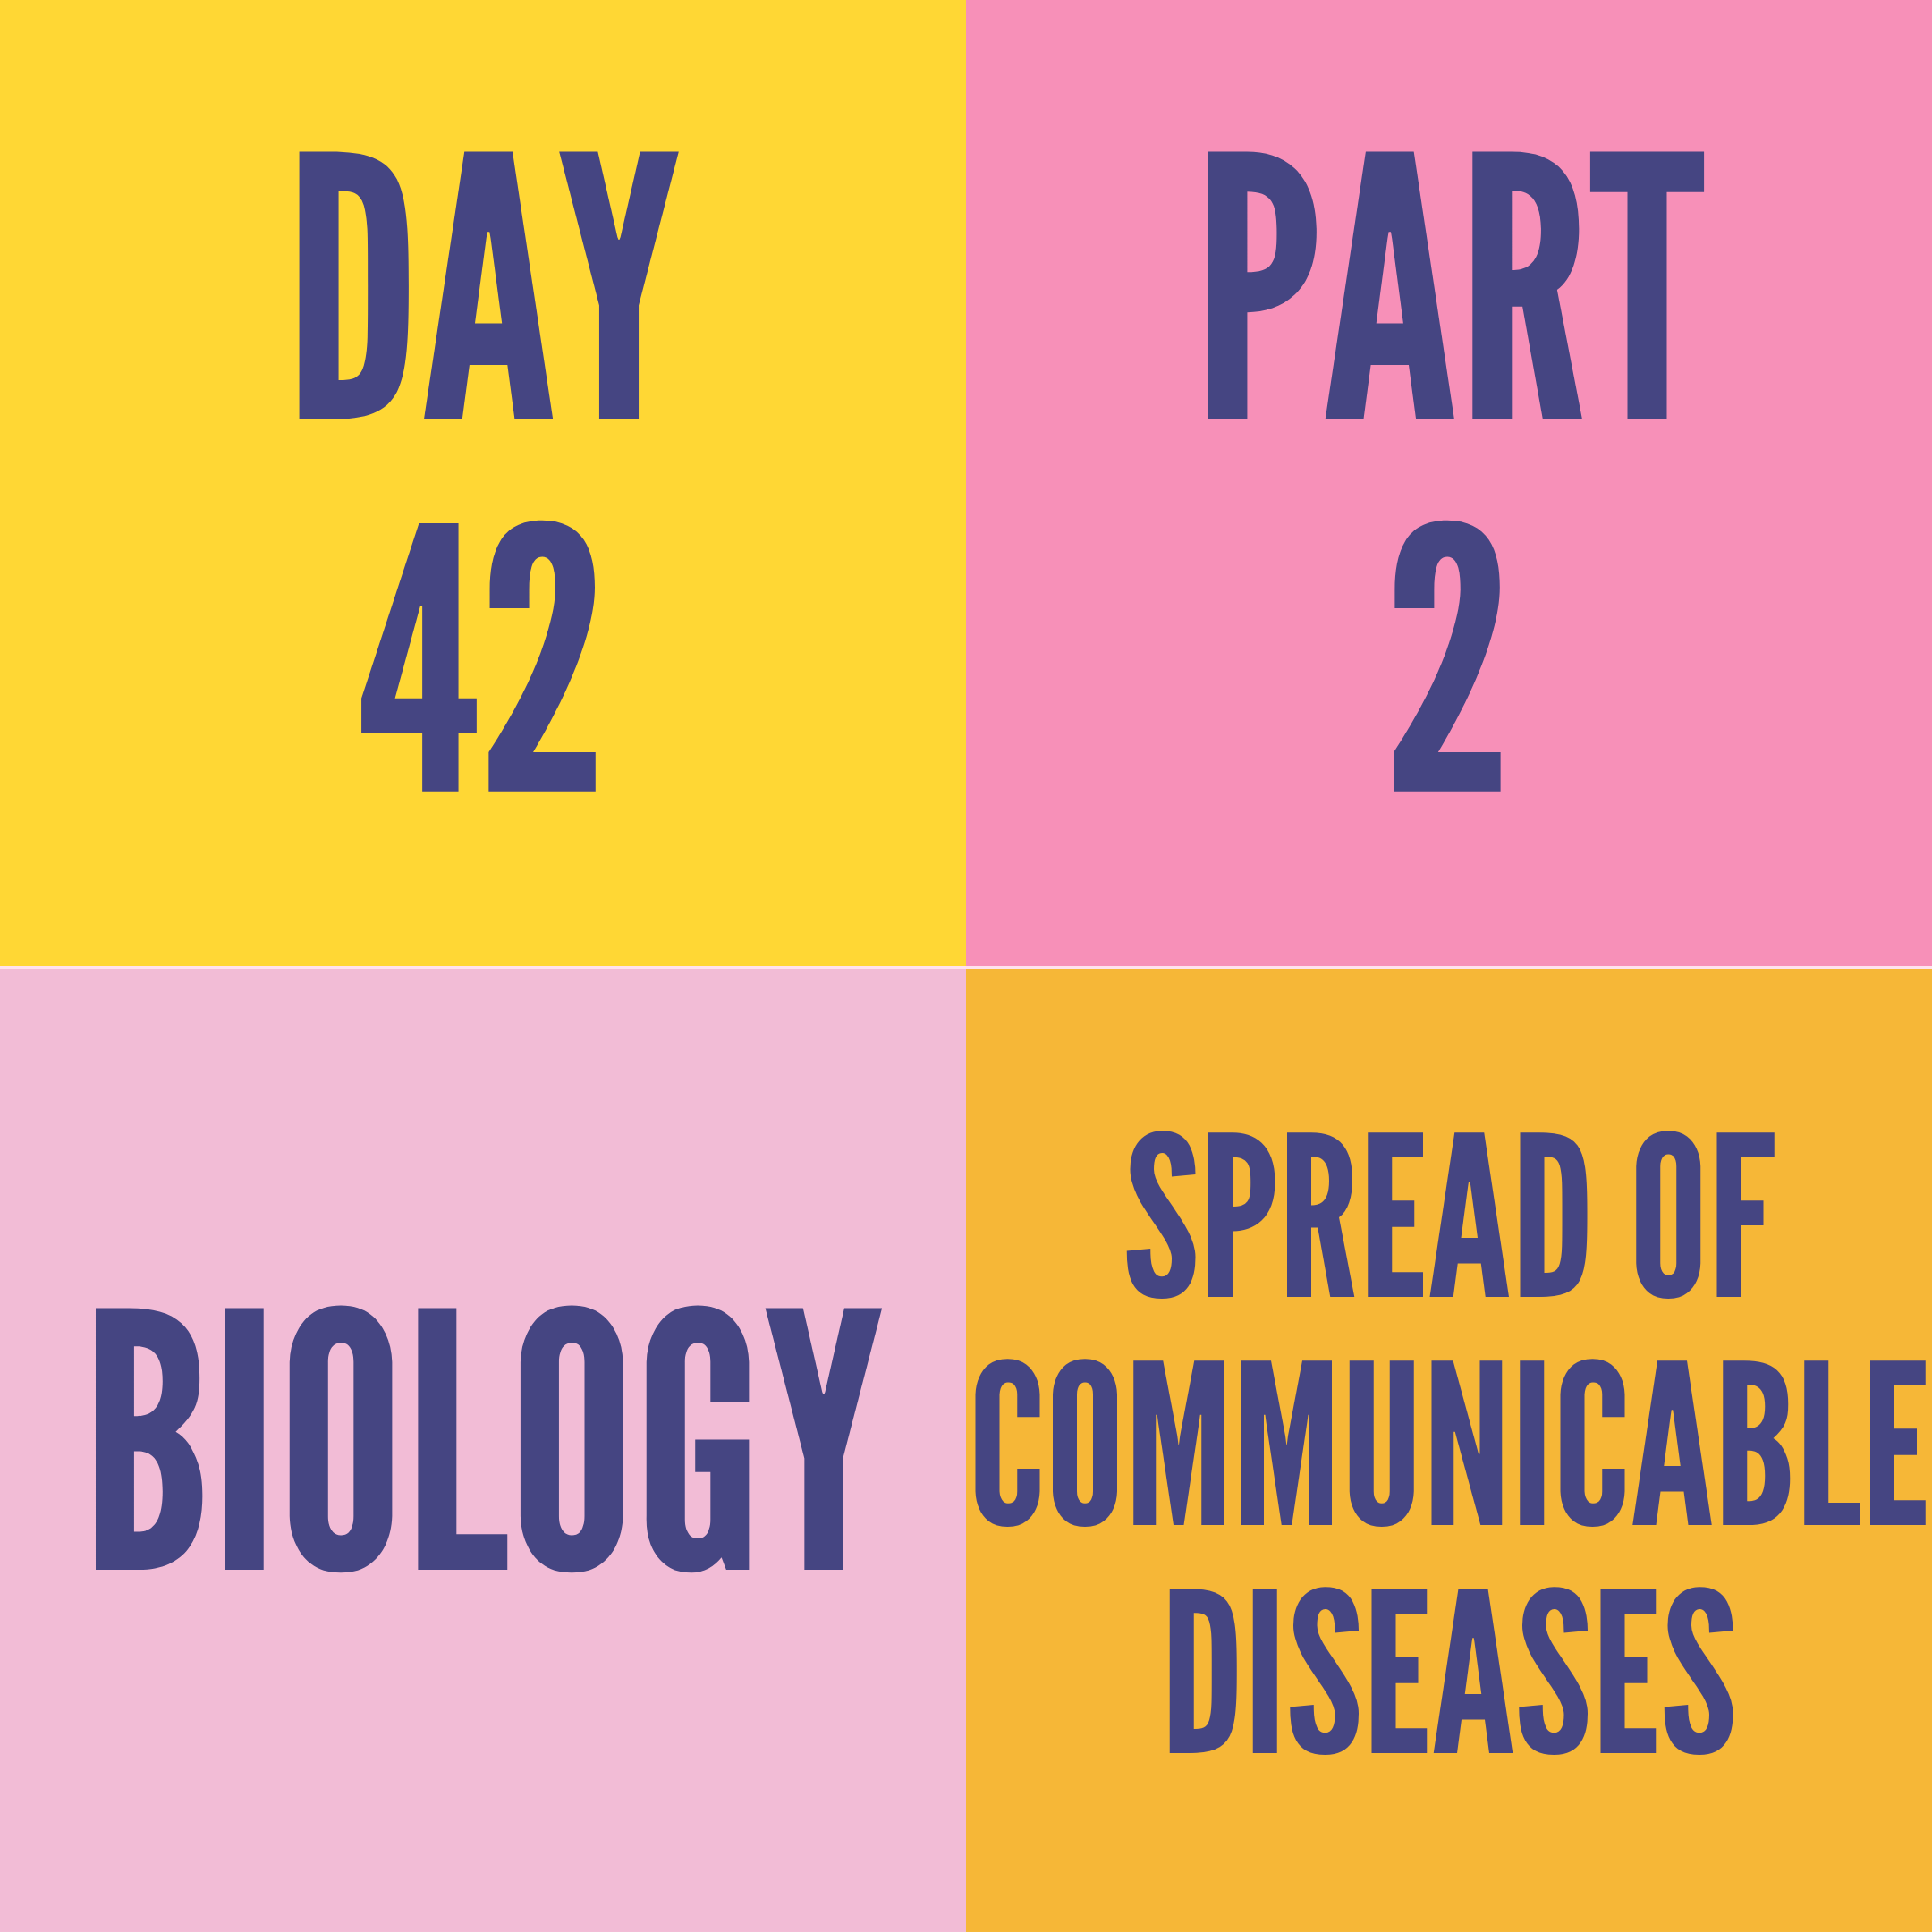 DAY-42 PART-2 SPREAD OF COMMUNICABLE DISEASES